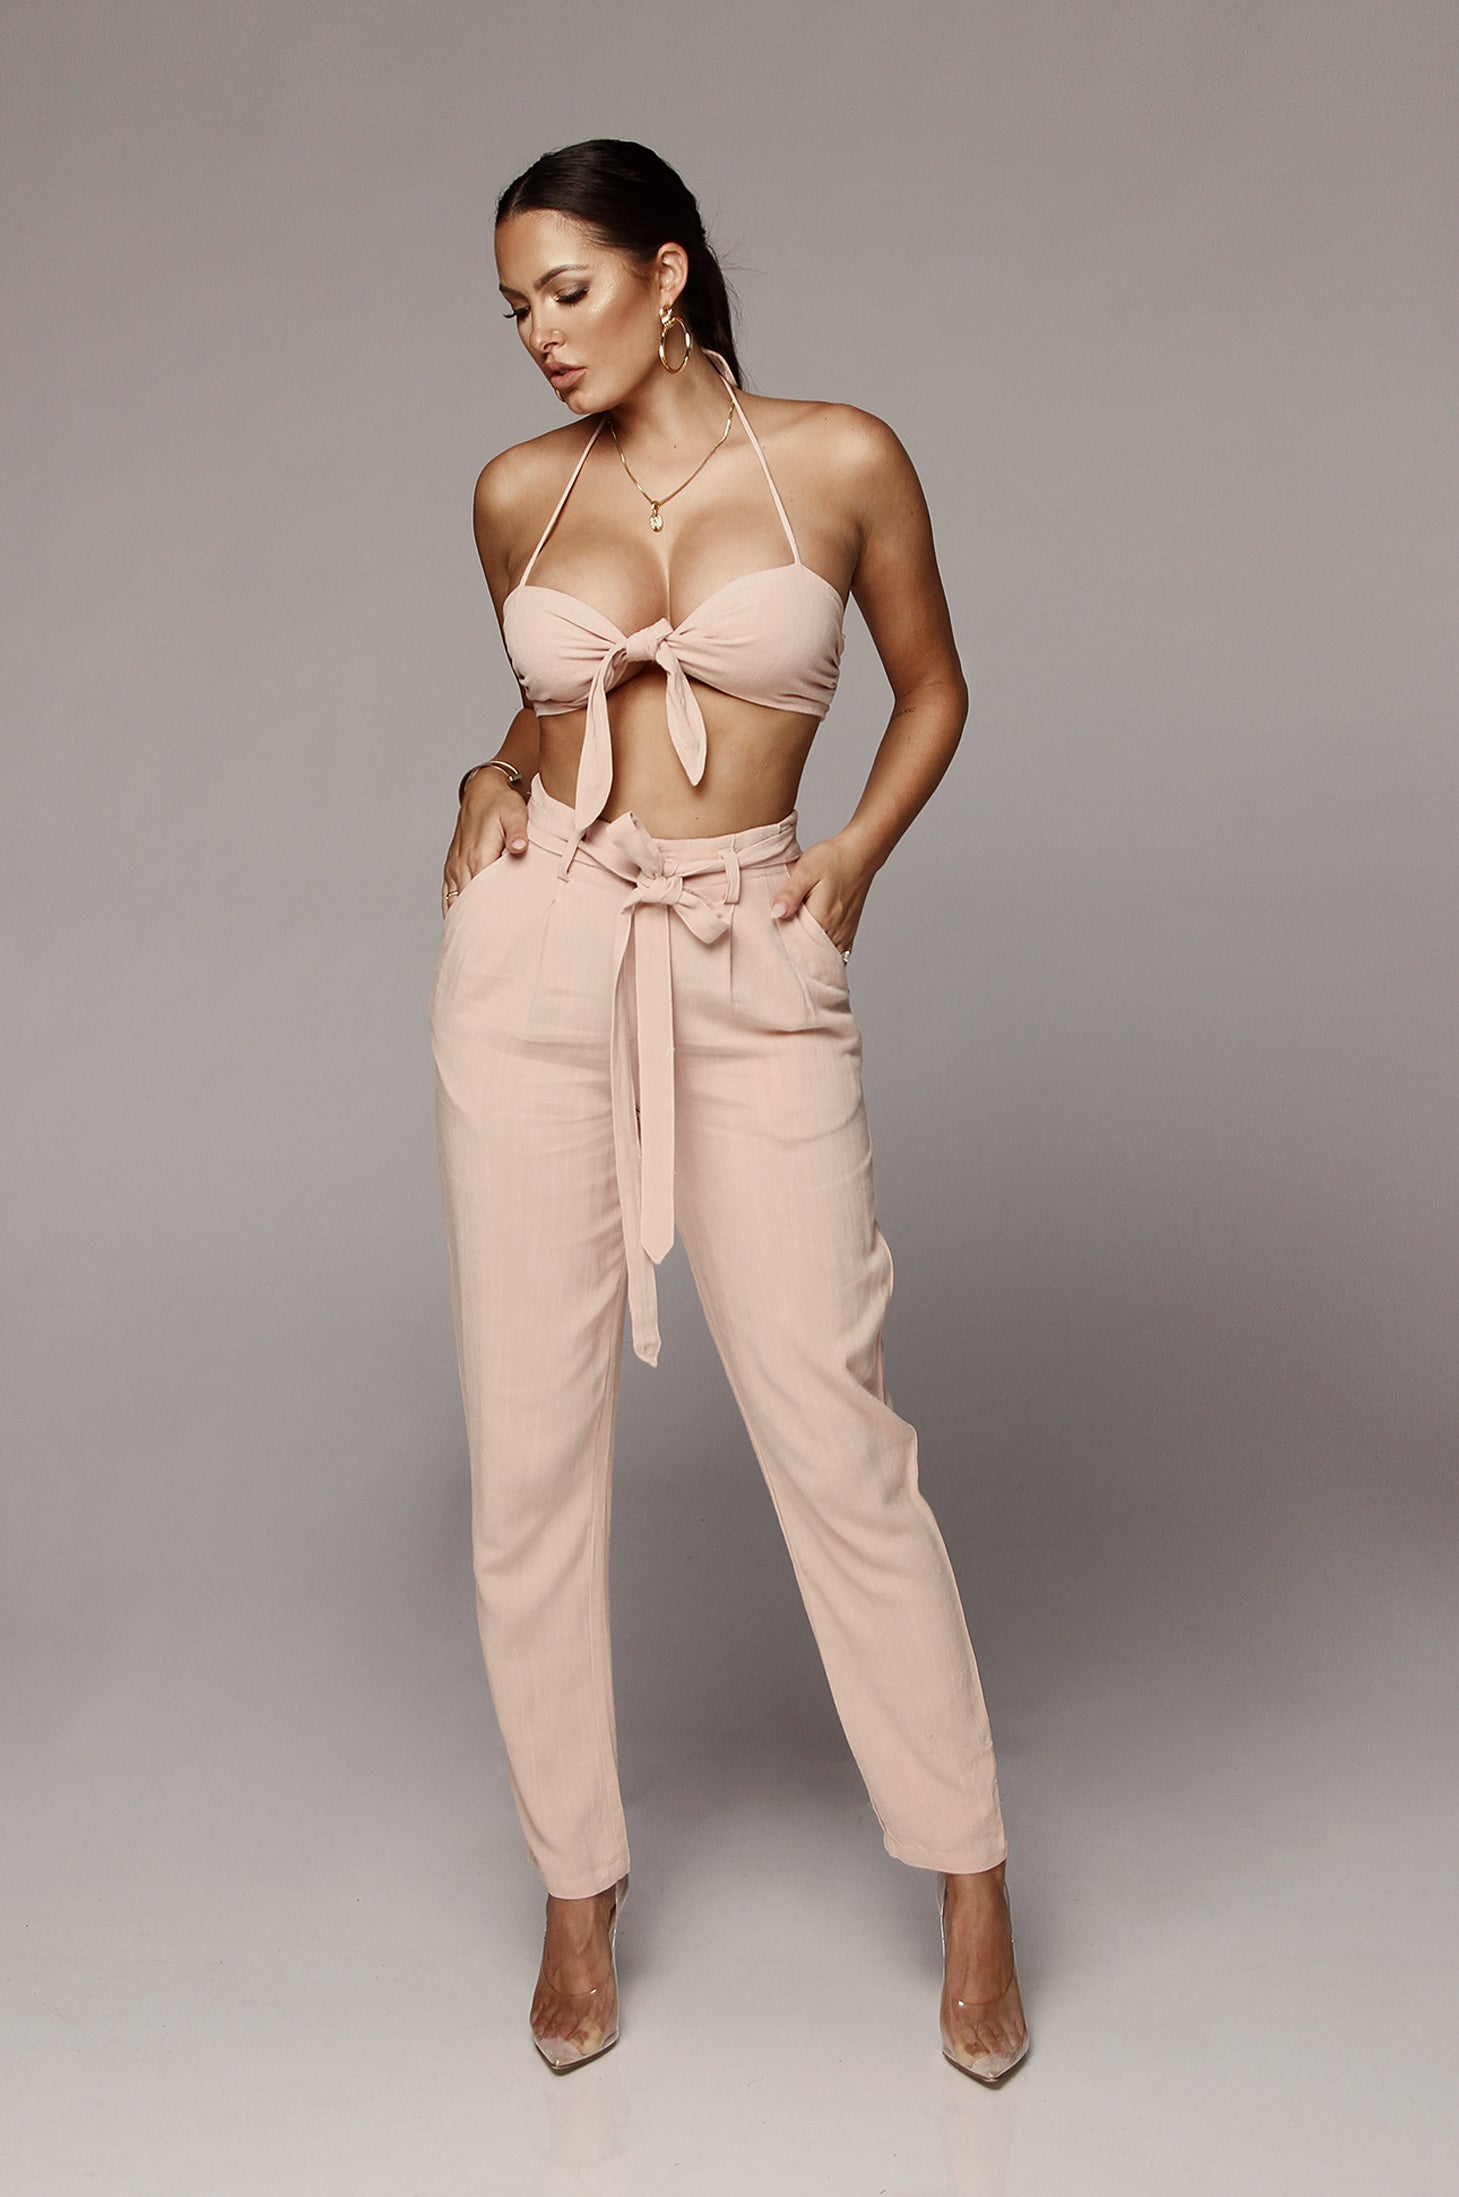 Dusty Rose Clara Tie Top and Bottom Set